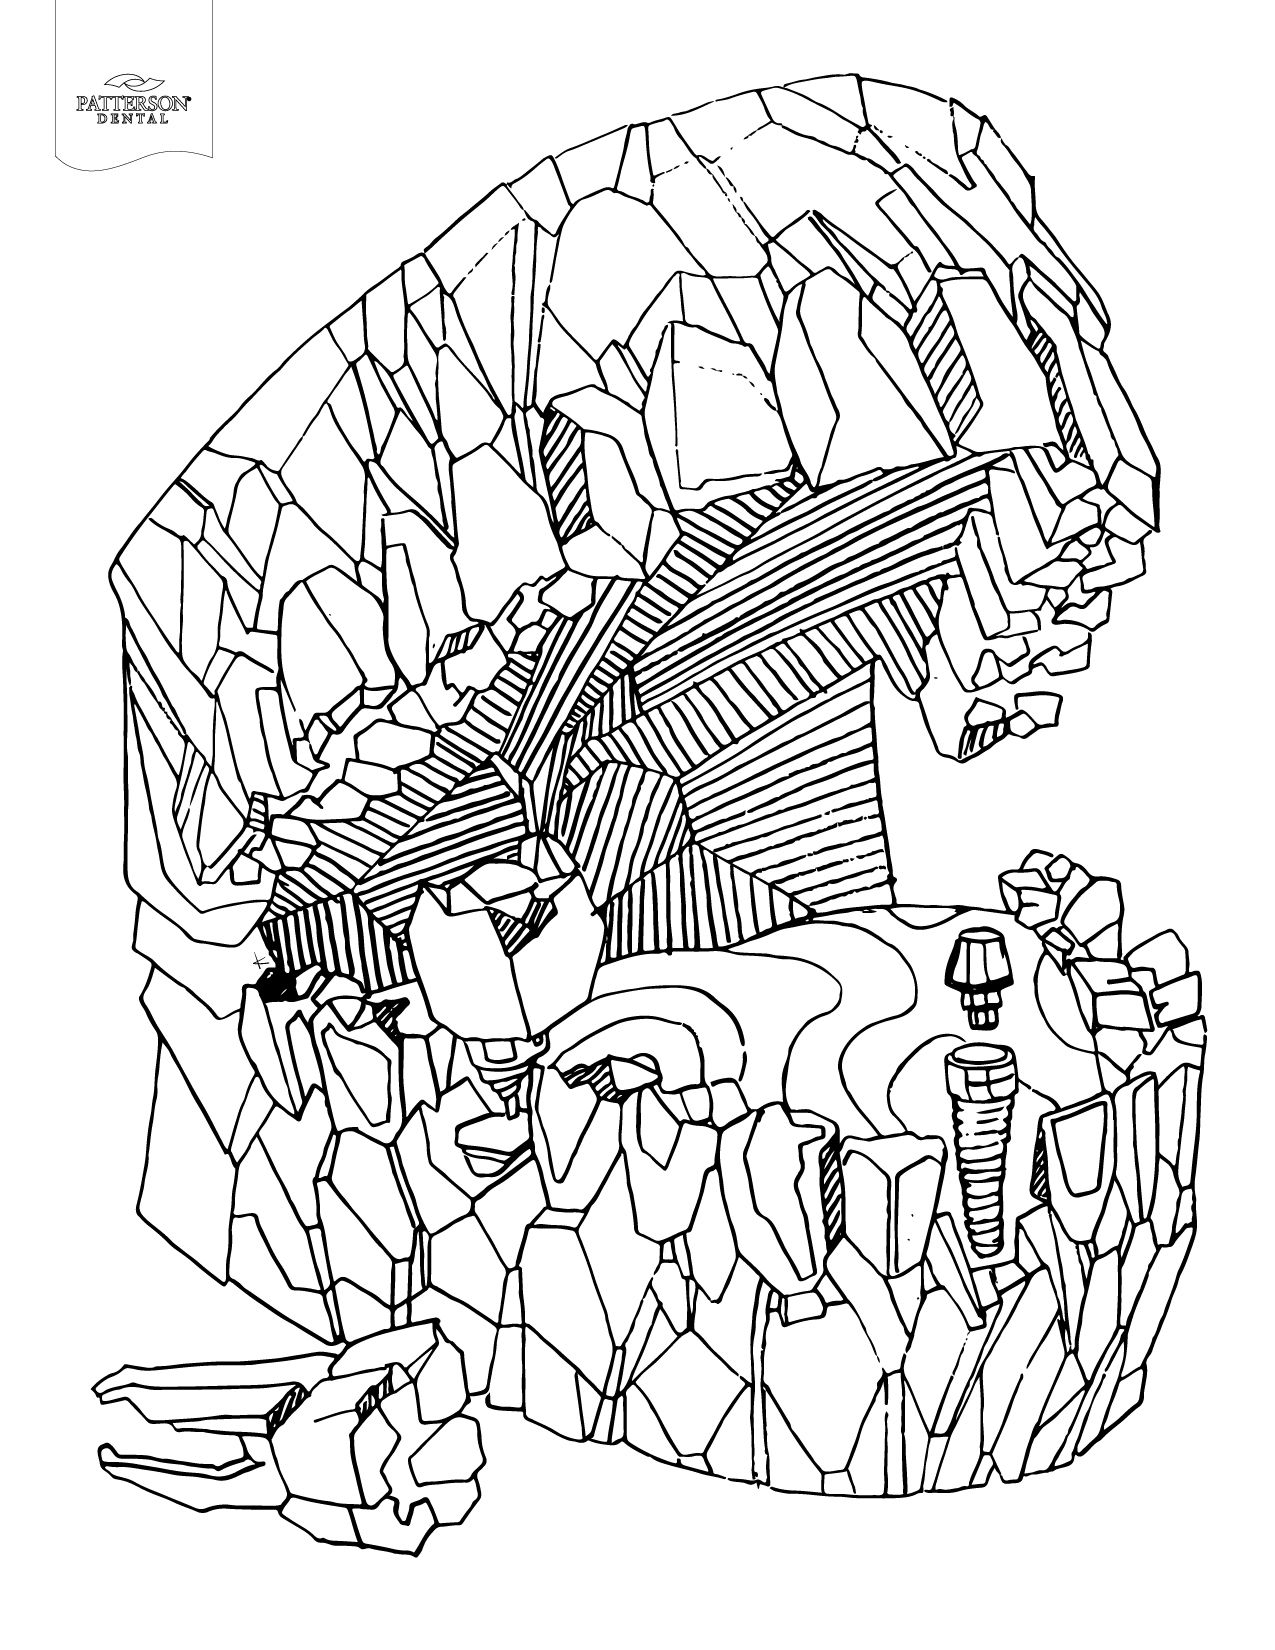 Mouth carved from rock adult coloring page. Talk about a